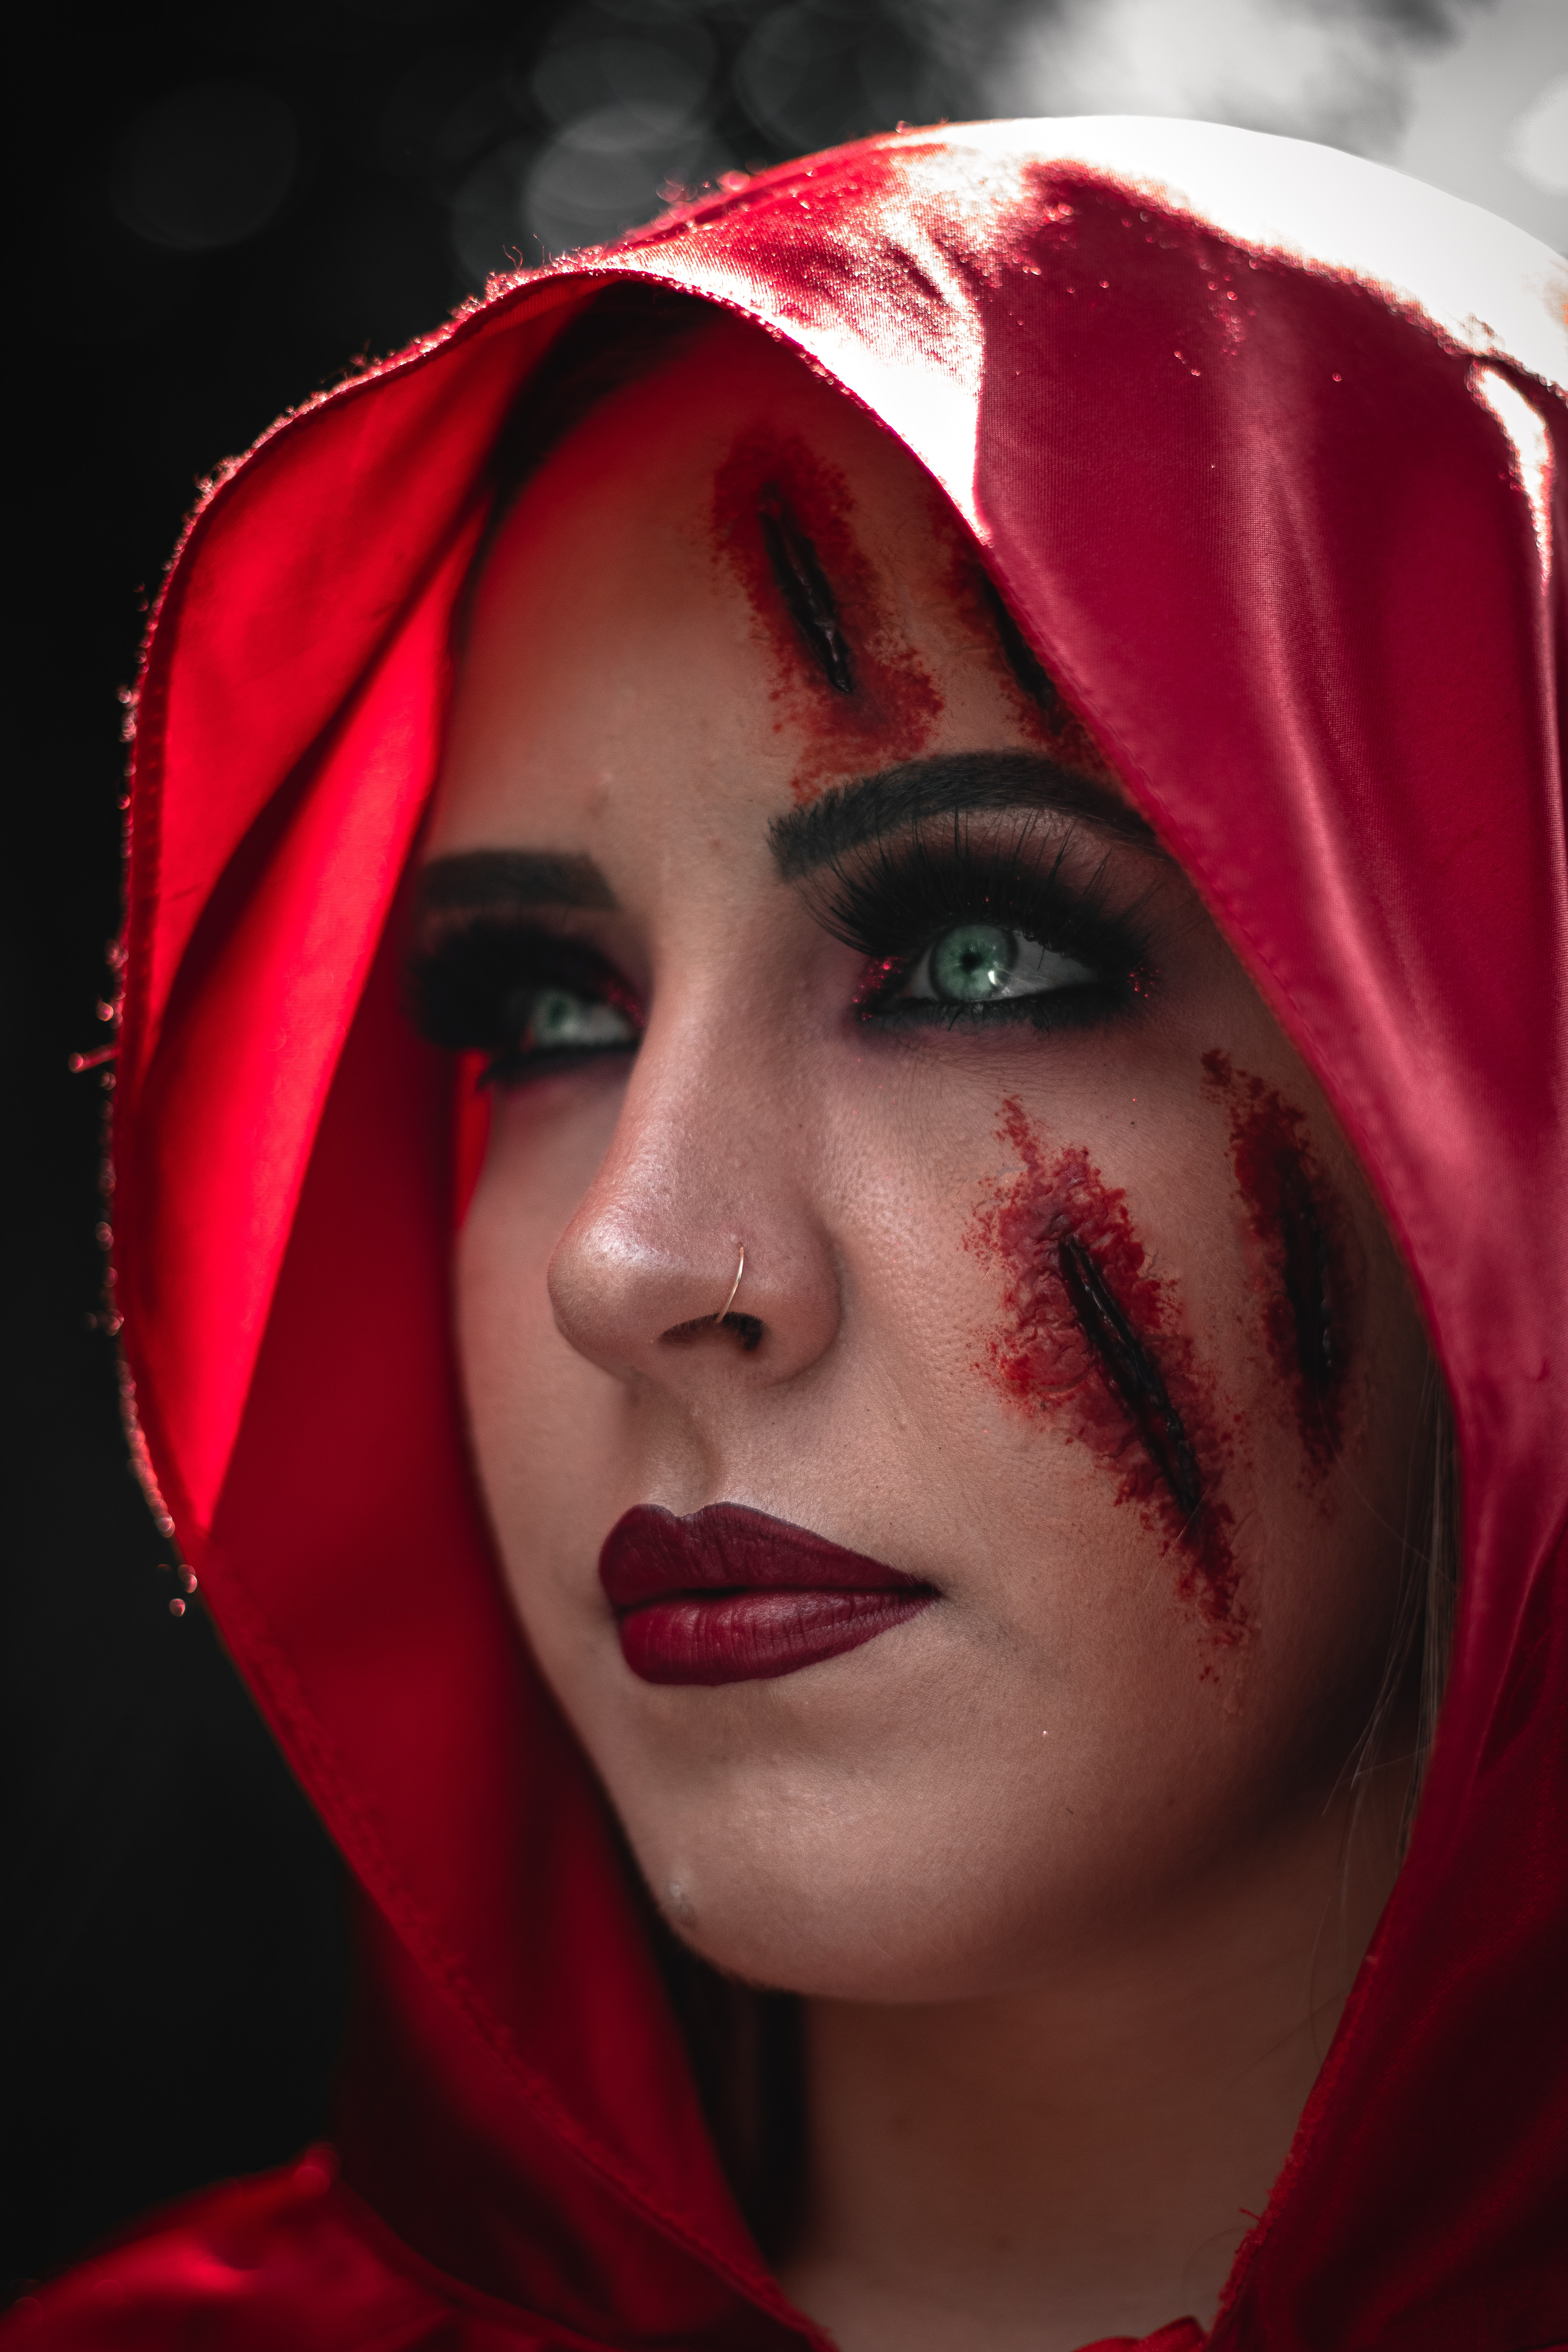 woman in red hood